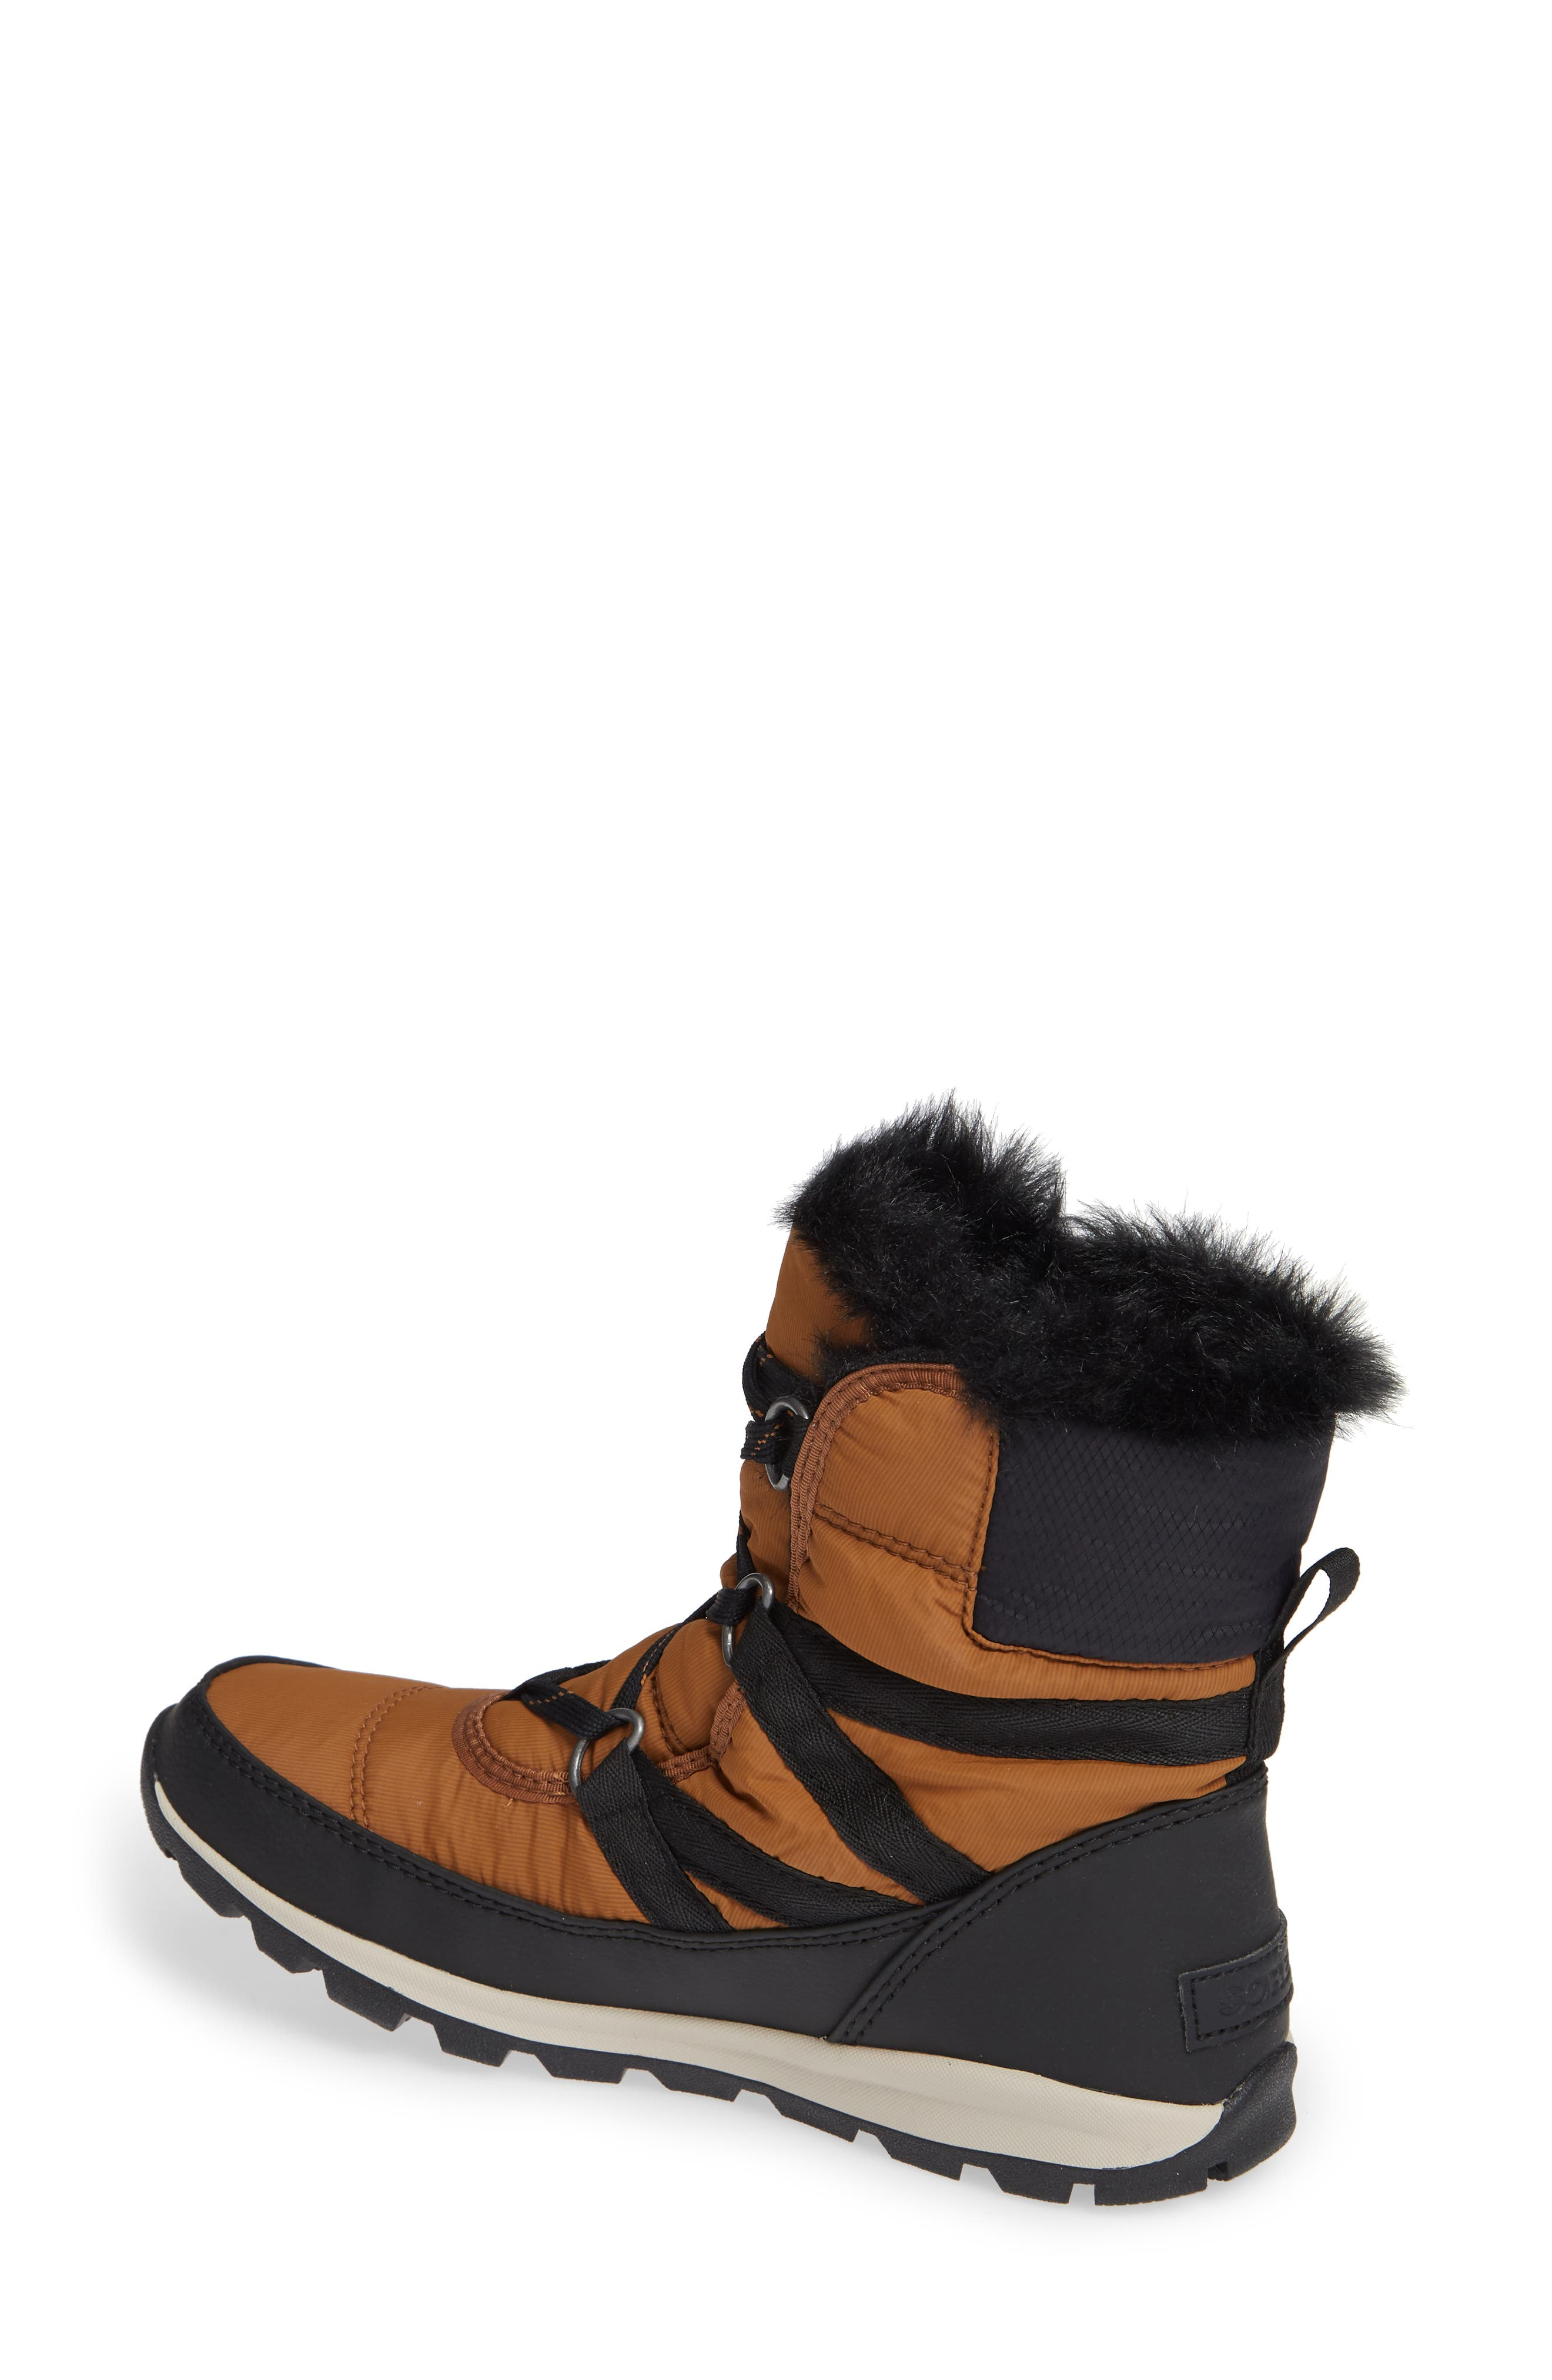 Whitney Snow Bootie,                             Alternate thumbnail 2, color,                             CAMEL BROWN